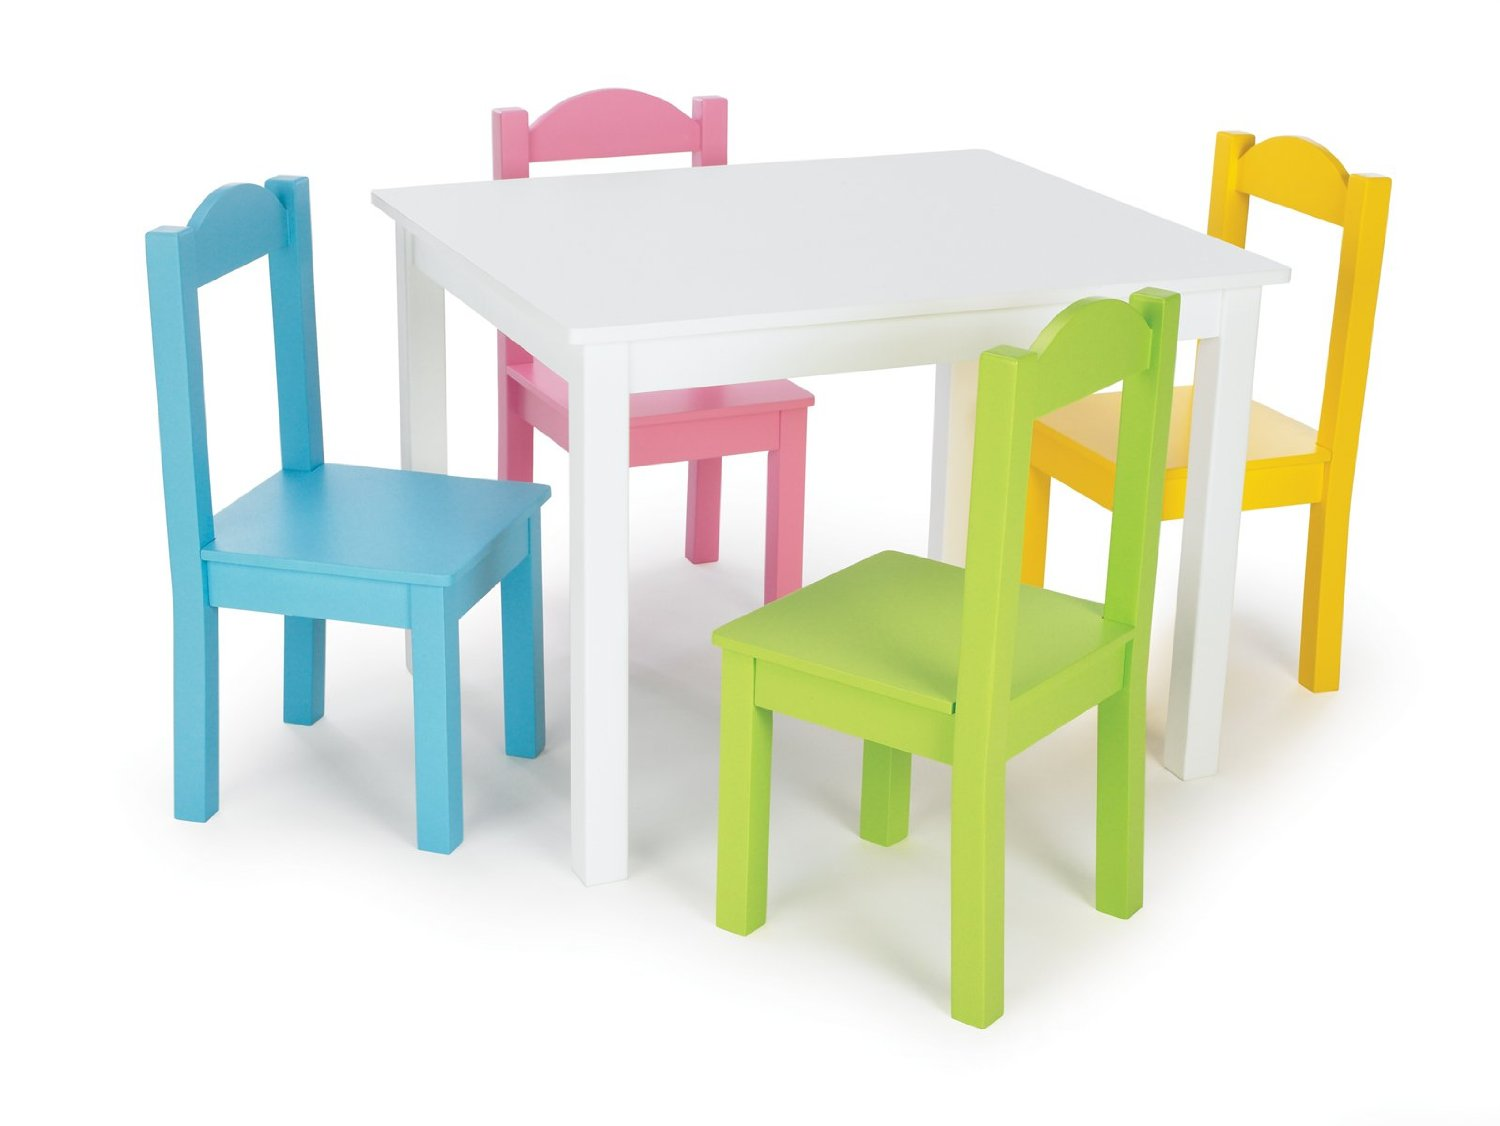 Infant Table And Chairs Kids Table With Chairs